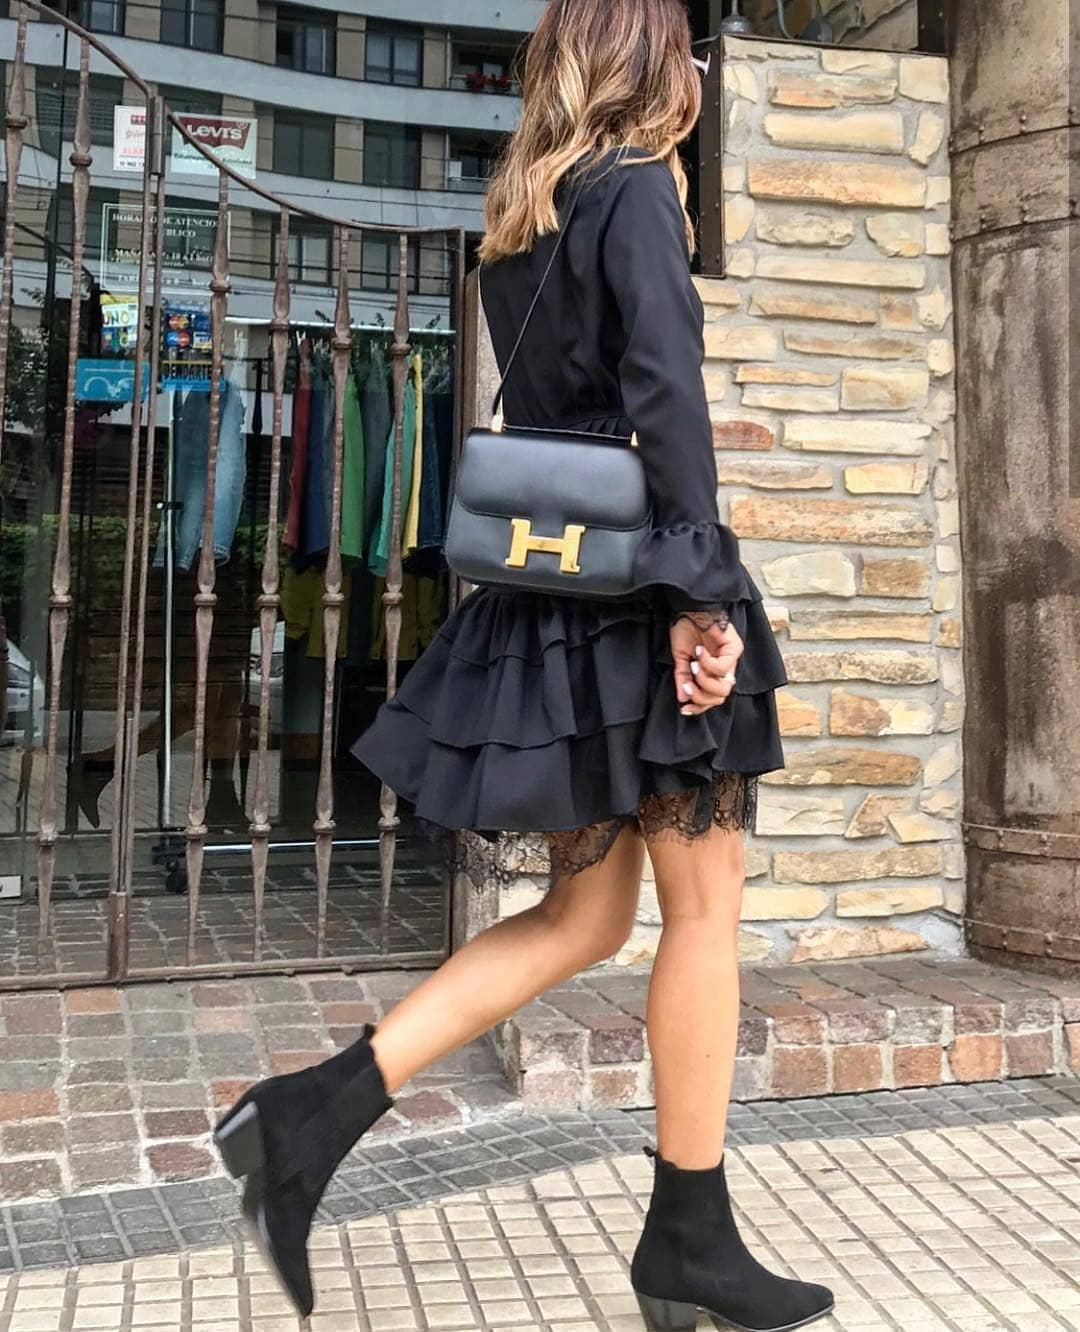 Ruffled Long Sleeve Dress With Sock Ankle Boots: All In Black Look 2019